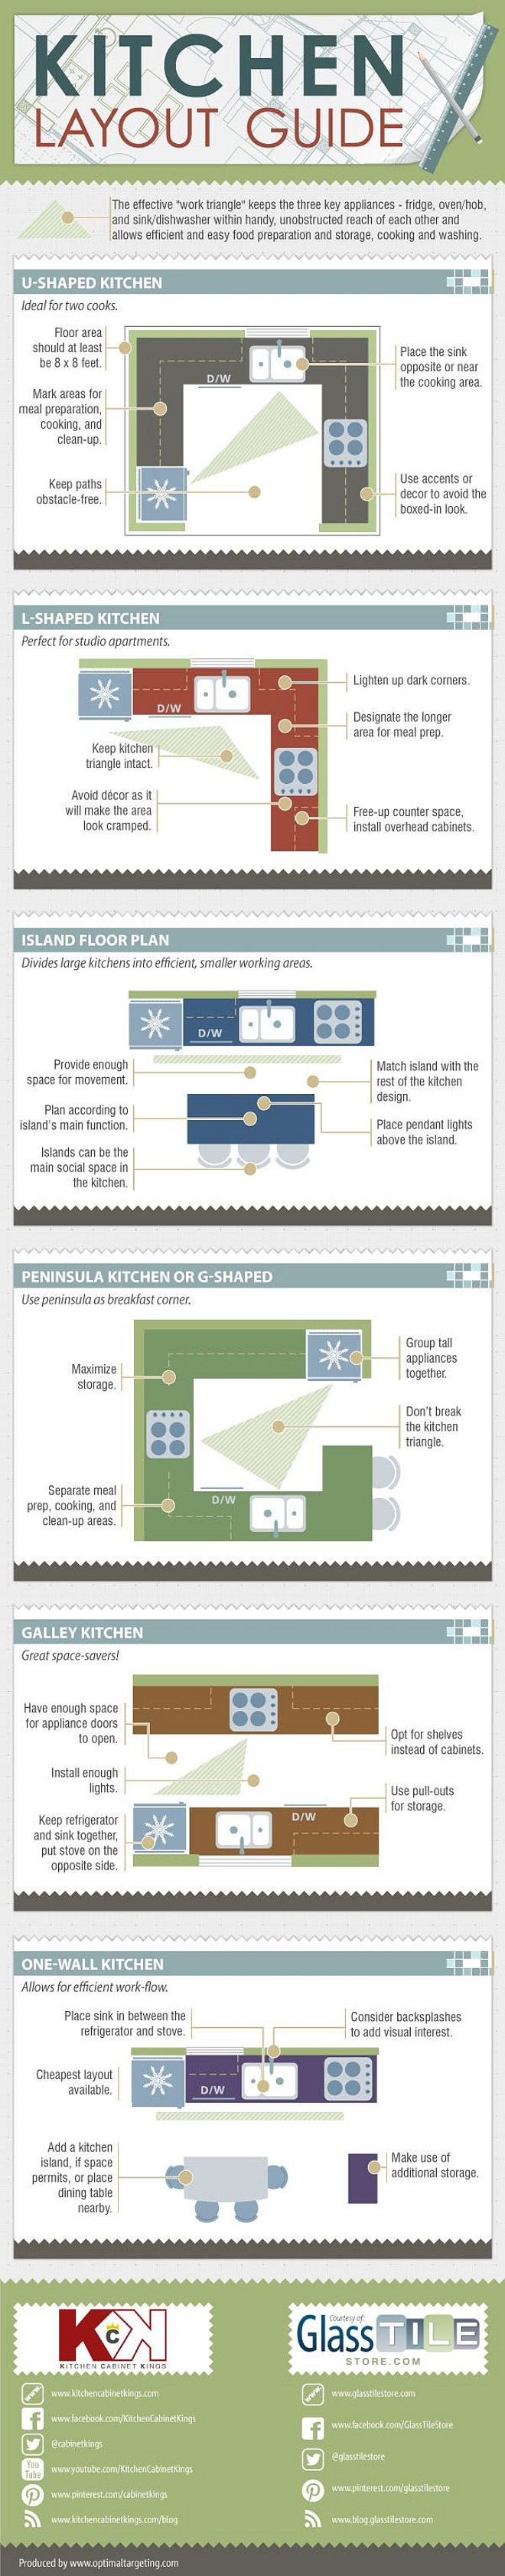 Kitchen Layout. Interior Design Tips on Kitchen Layout. Kitchen Layout Guide. #Kitchen #KitchenLayout #Guide #InteriordesignTips